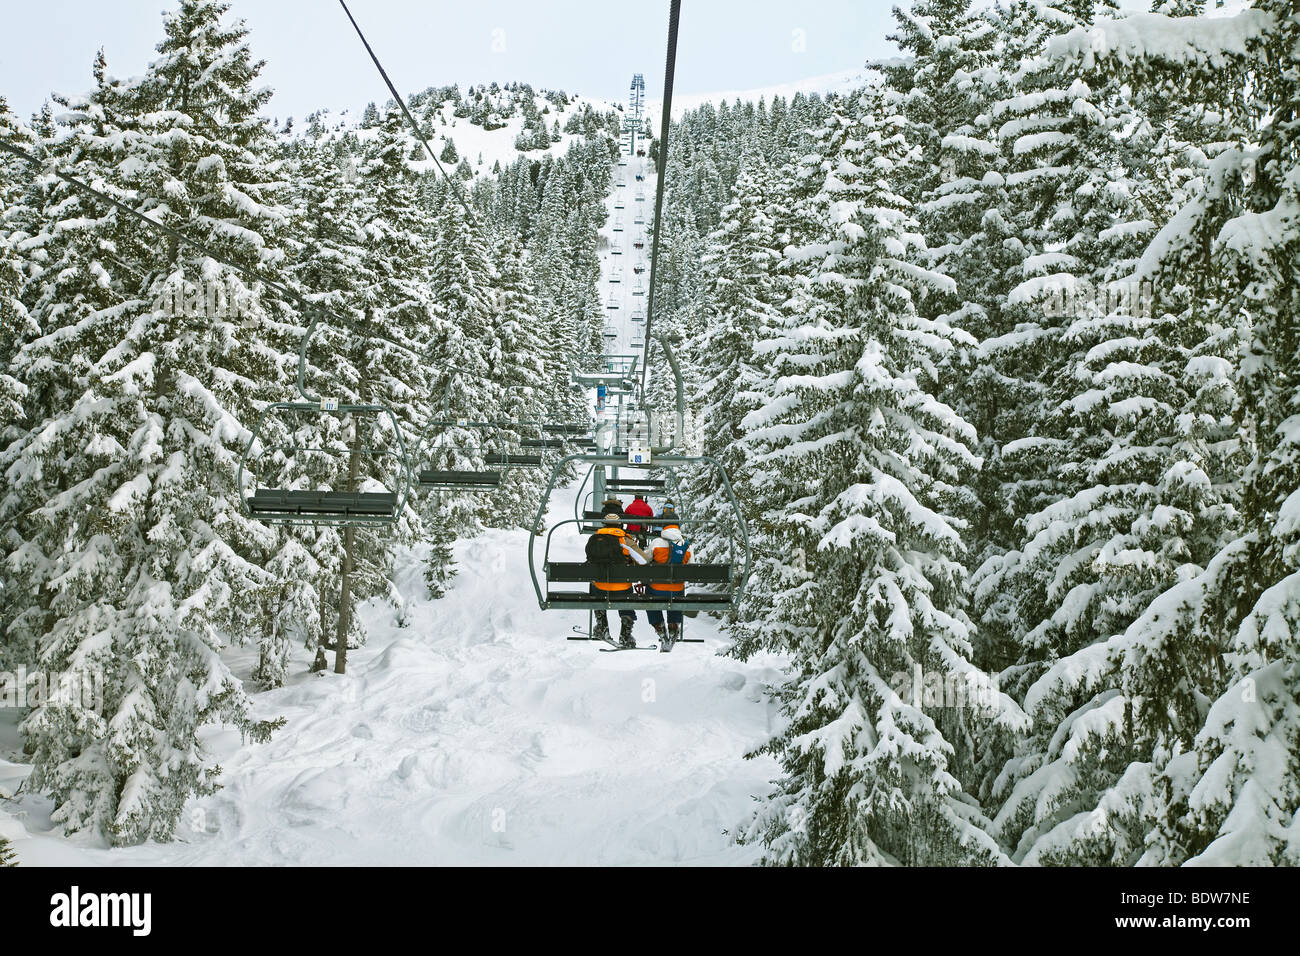 Skiers on a chairlift, Meribel ski resort in the Three Valleys, Les Trois Vallees, Savoie, French Alps, France - Stock Image